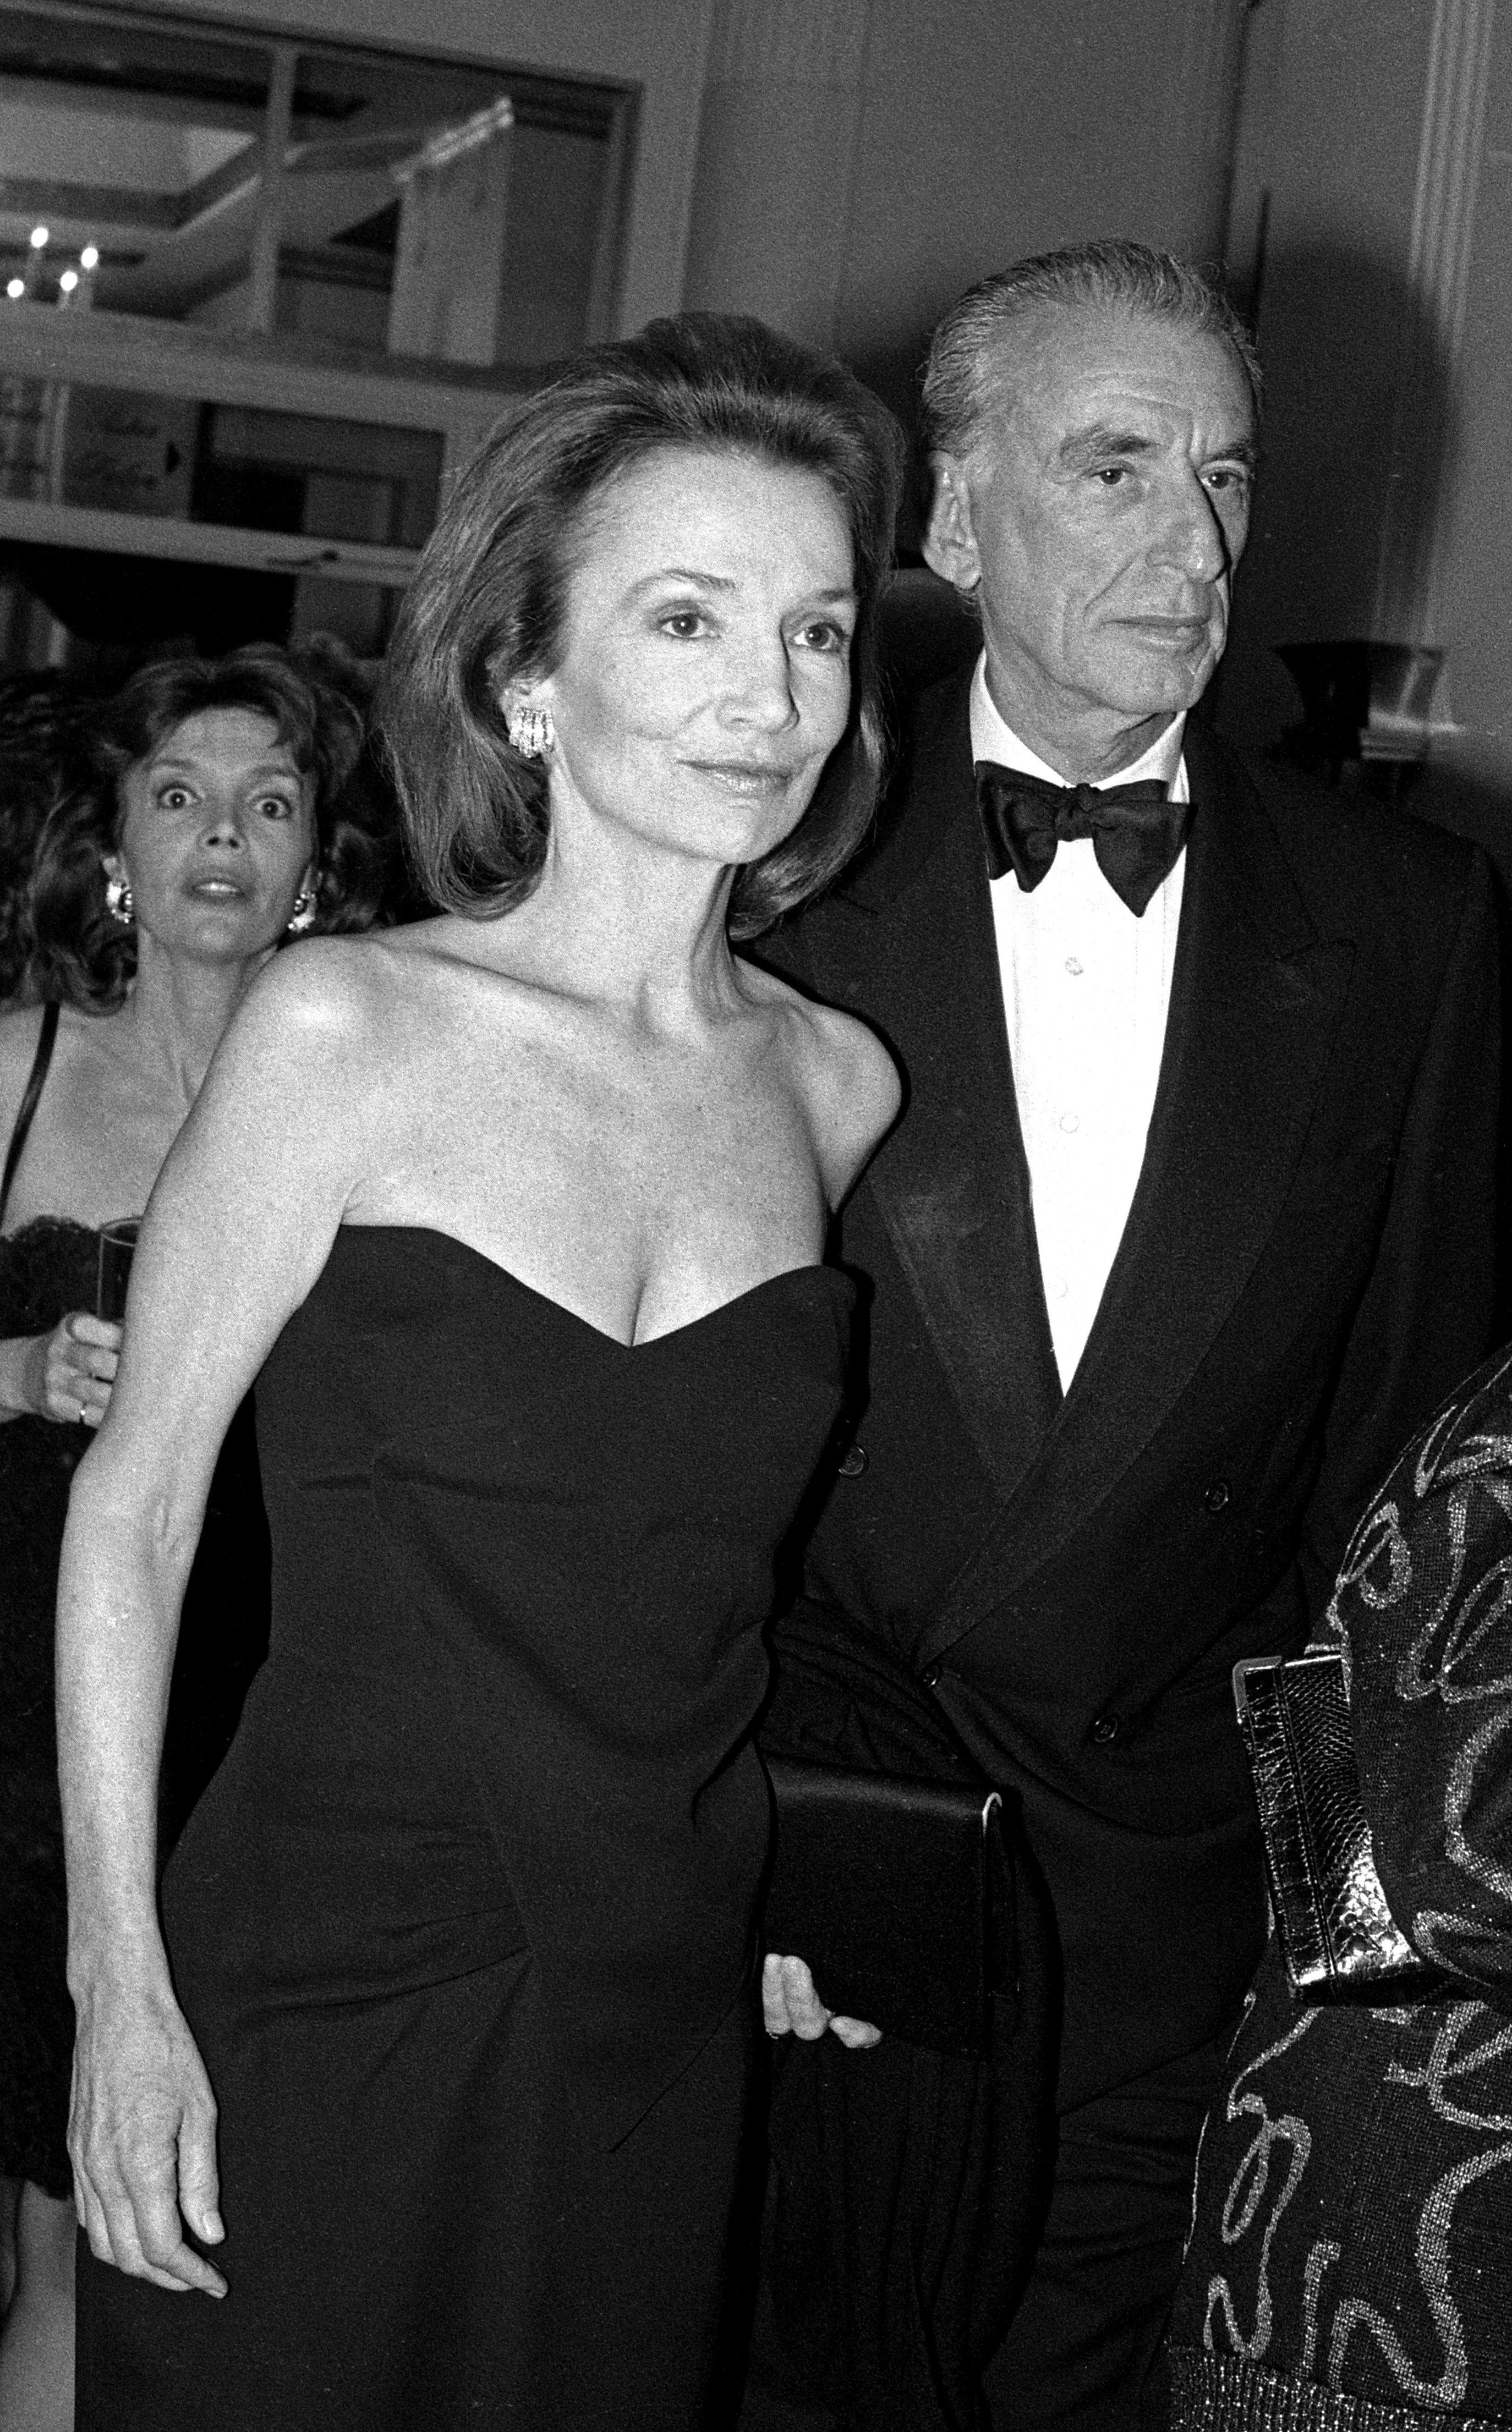 Lee Radziwill and ex-husband Herb Ross at the Waldorf Astoria Hotel | Photo: Getty Images